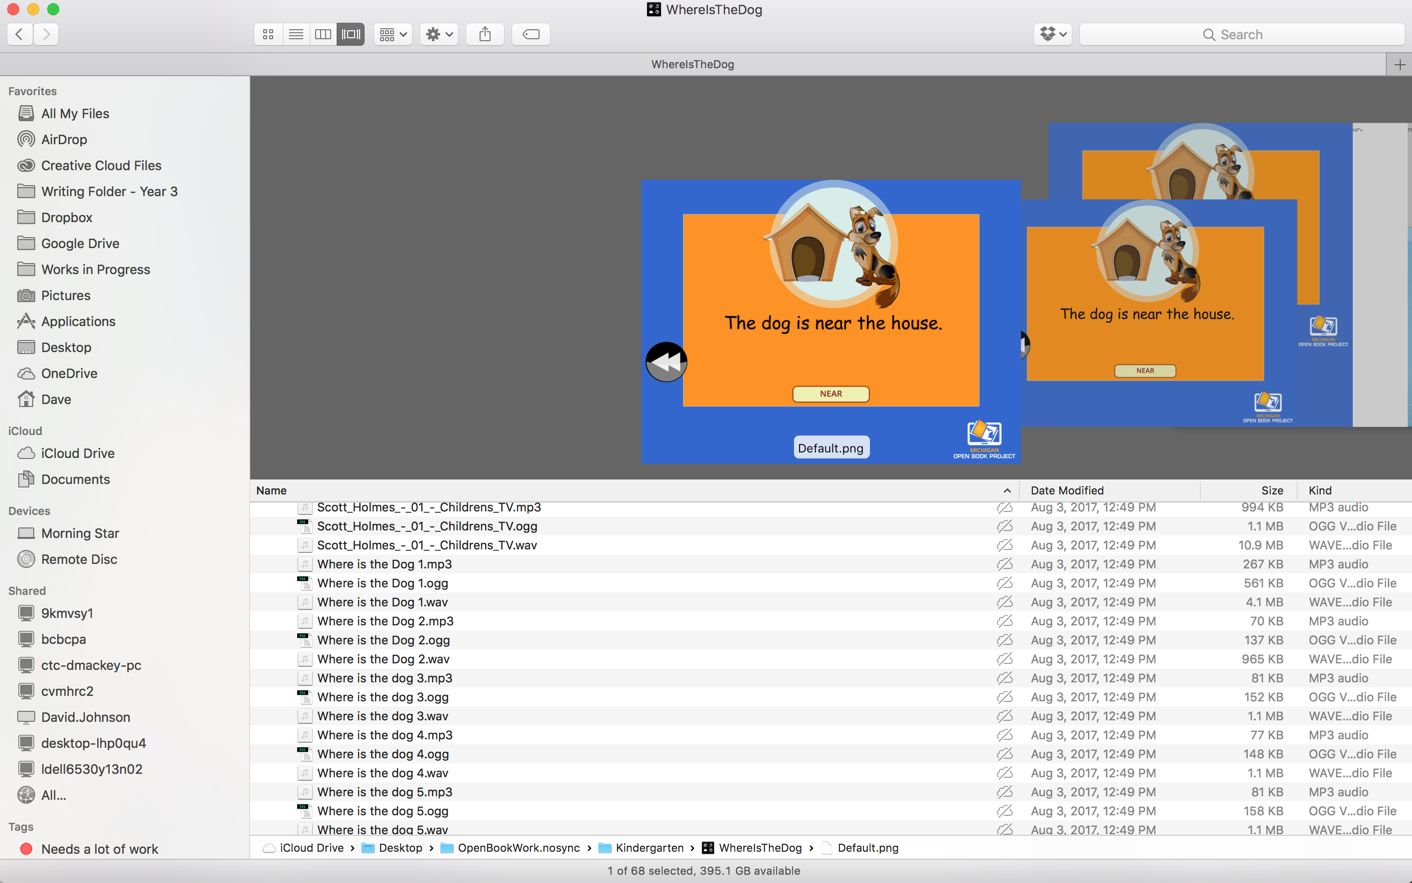 ogg Files missing when loading in iBooks Author - iBooks